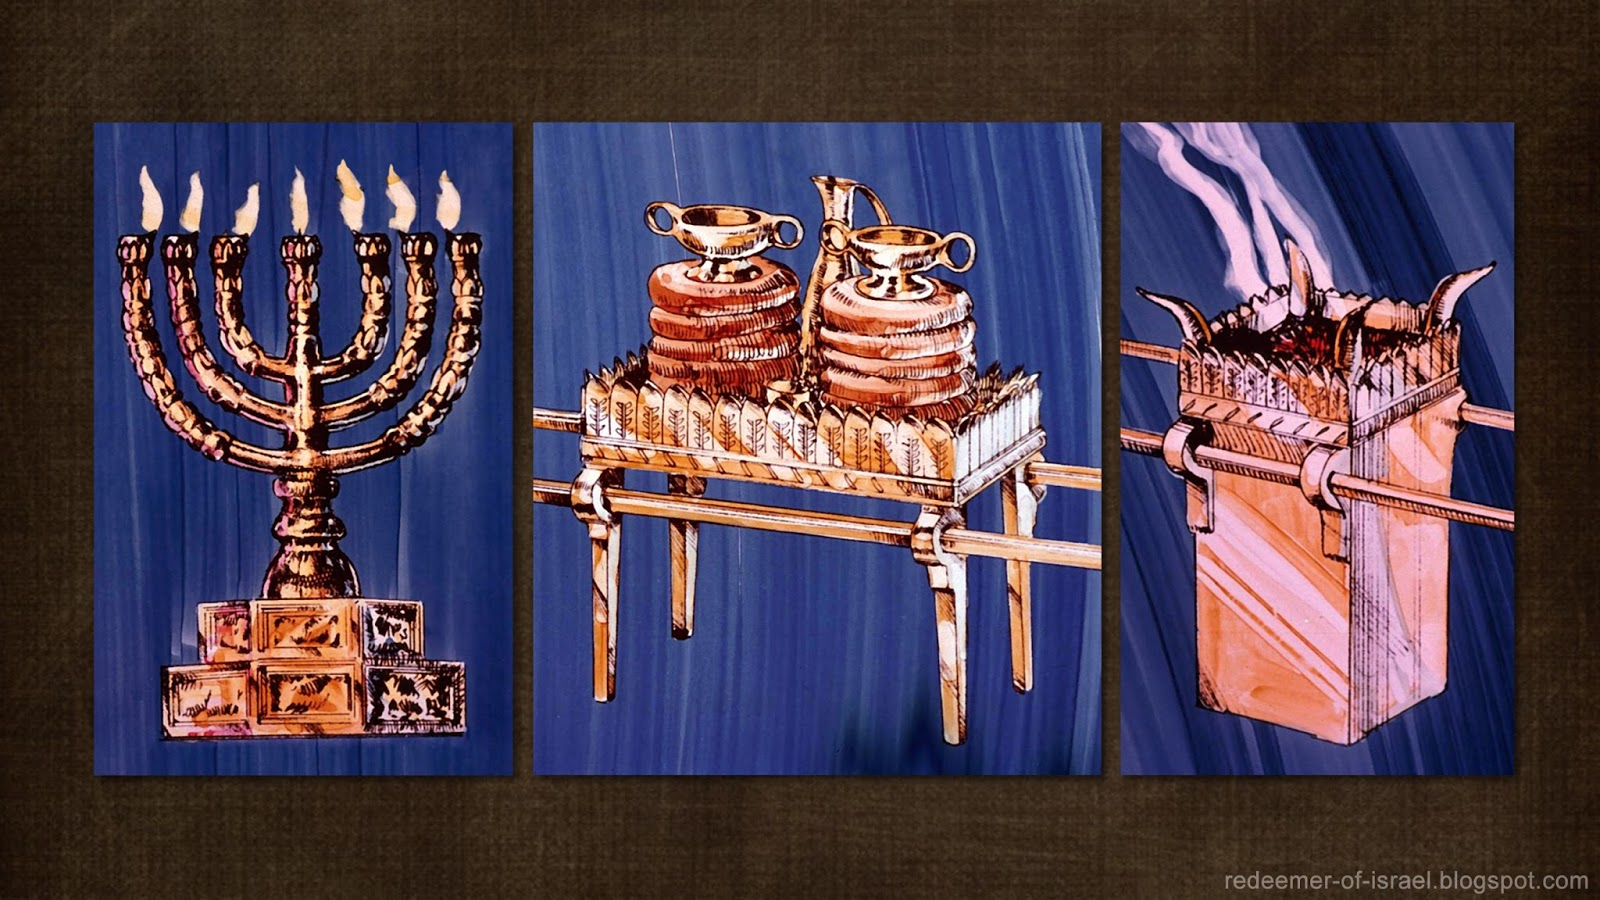 Redeemer of Israel: The Tabernacle and the Temple